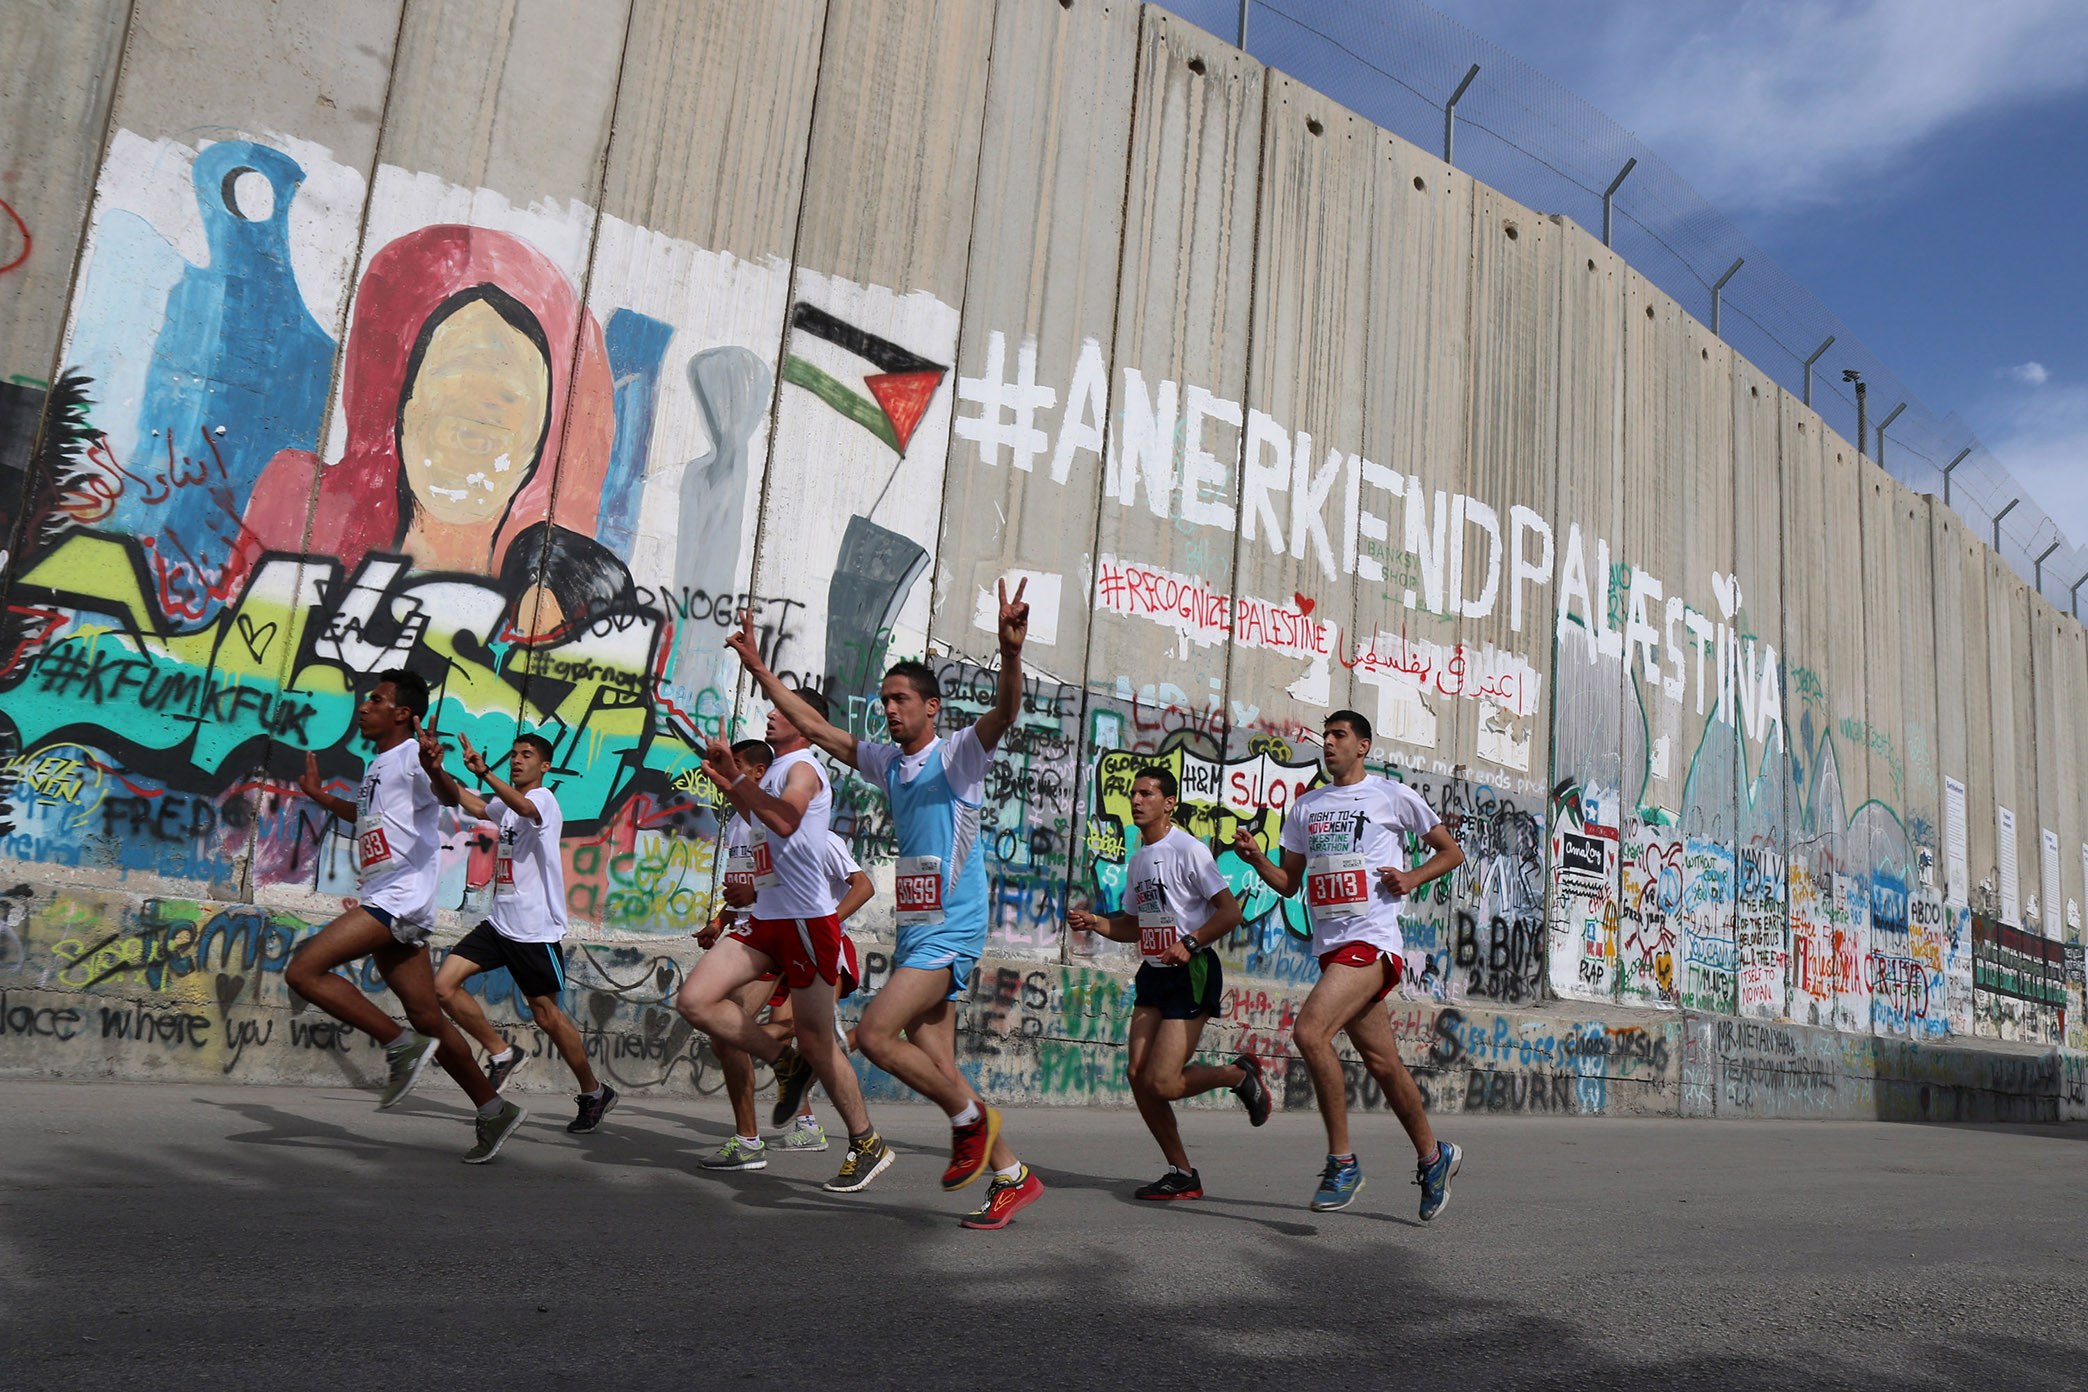 Some 3,200 runners raced along the Israeli Separation Wall dividing the West Bank city of Bethlehem during the third annual Palestine Marathon, March 27, 2015. (Photo by Ahmad Al-Bazz/GroundTruth)